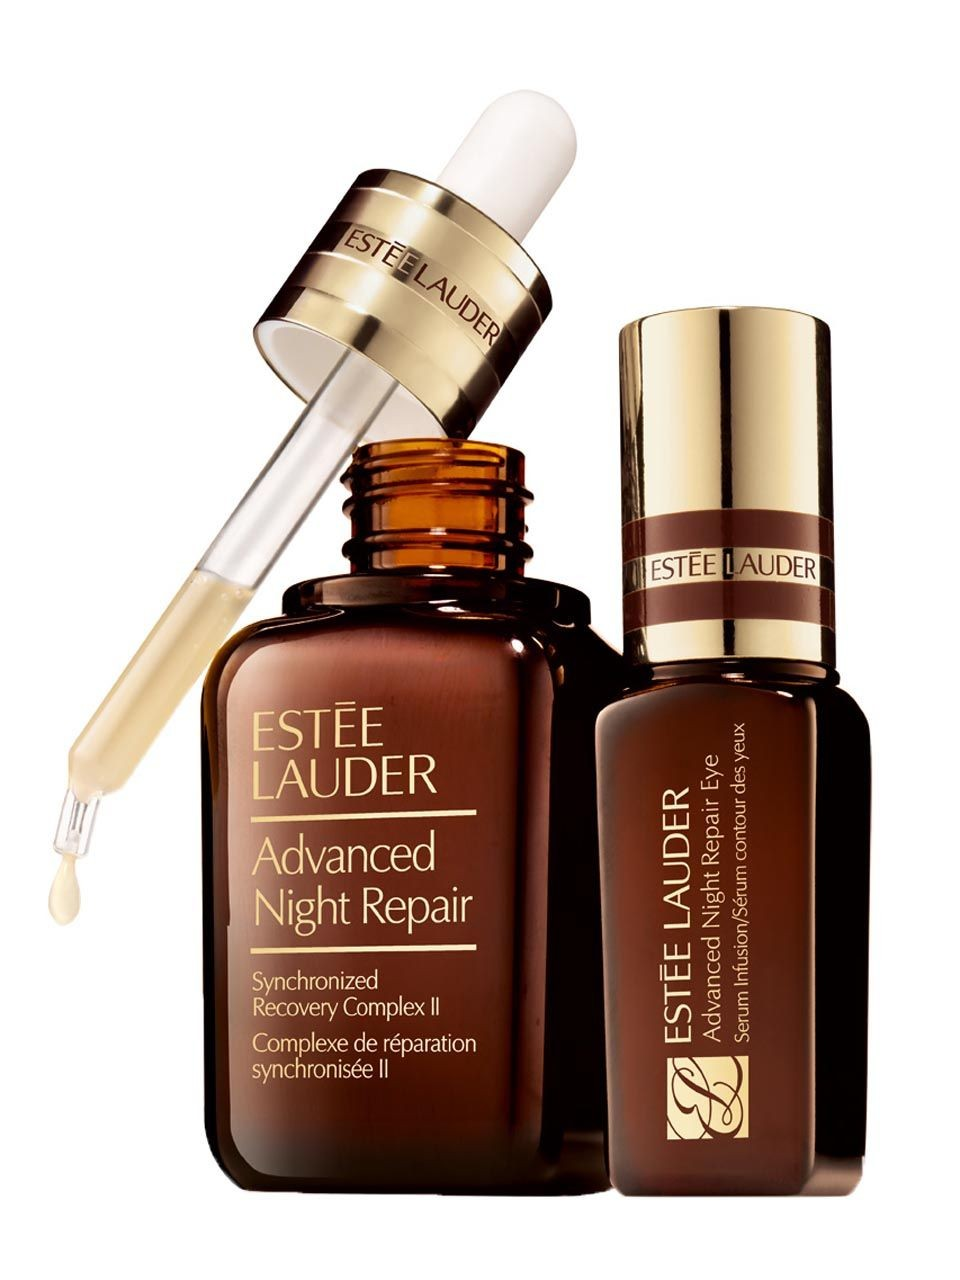 ESTEE LAUDER ADVANCED NIGHT REPAIR 50 ML + EYE SERUM 15 ML SET